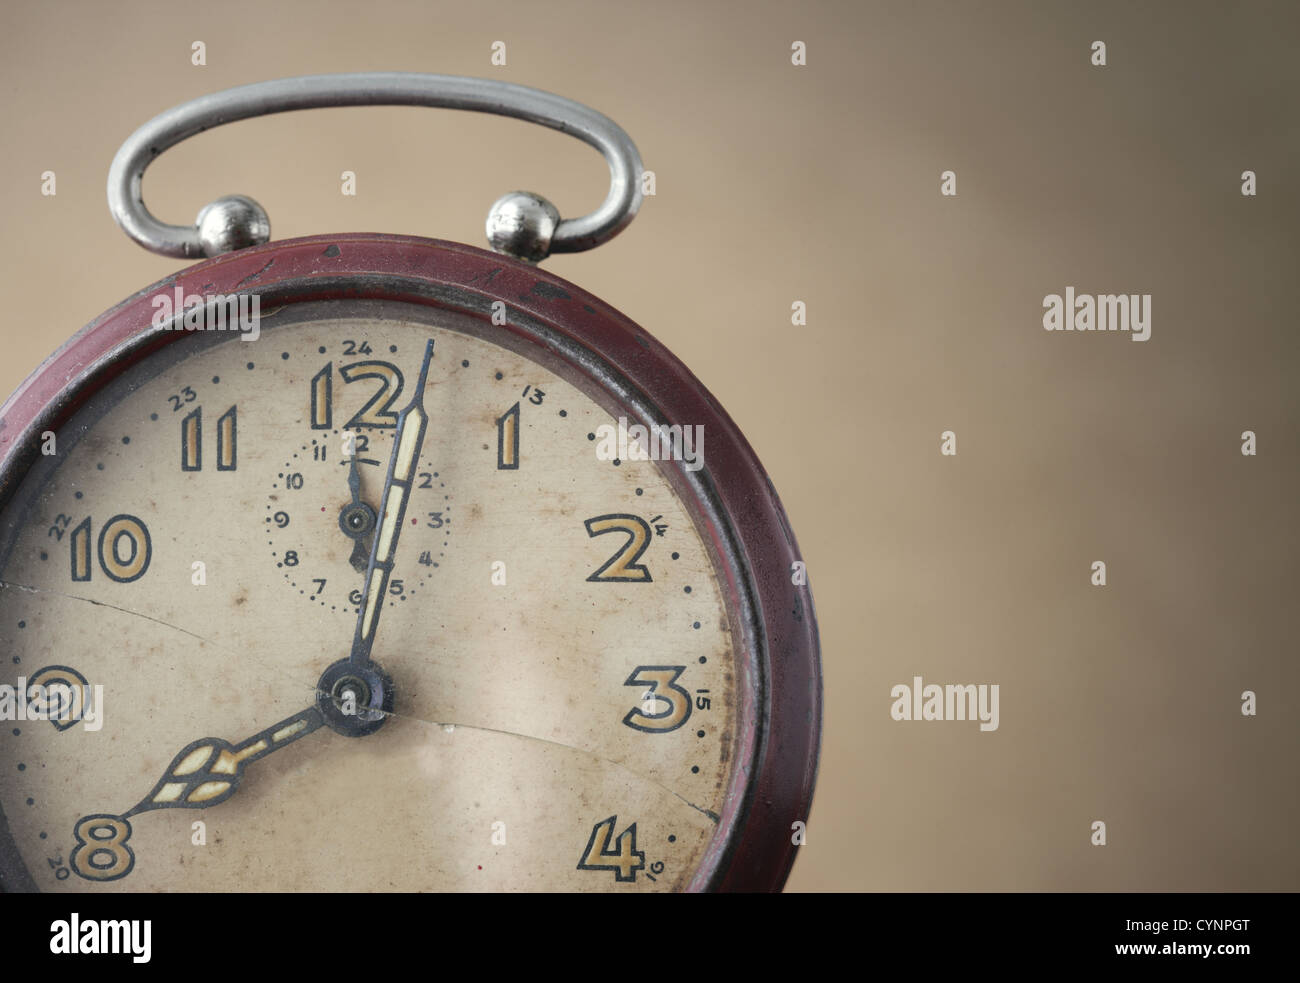 Old Alarm Clock close up - Stock Image